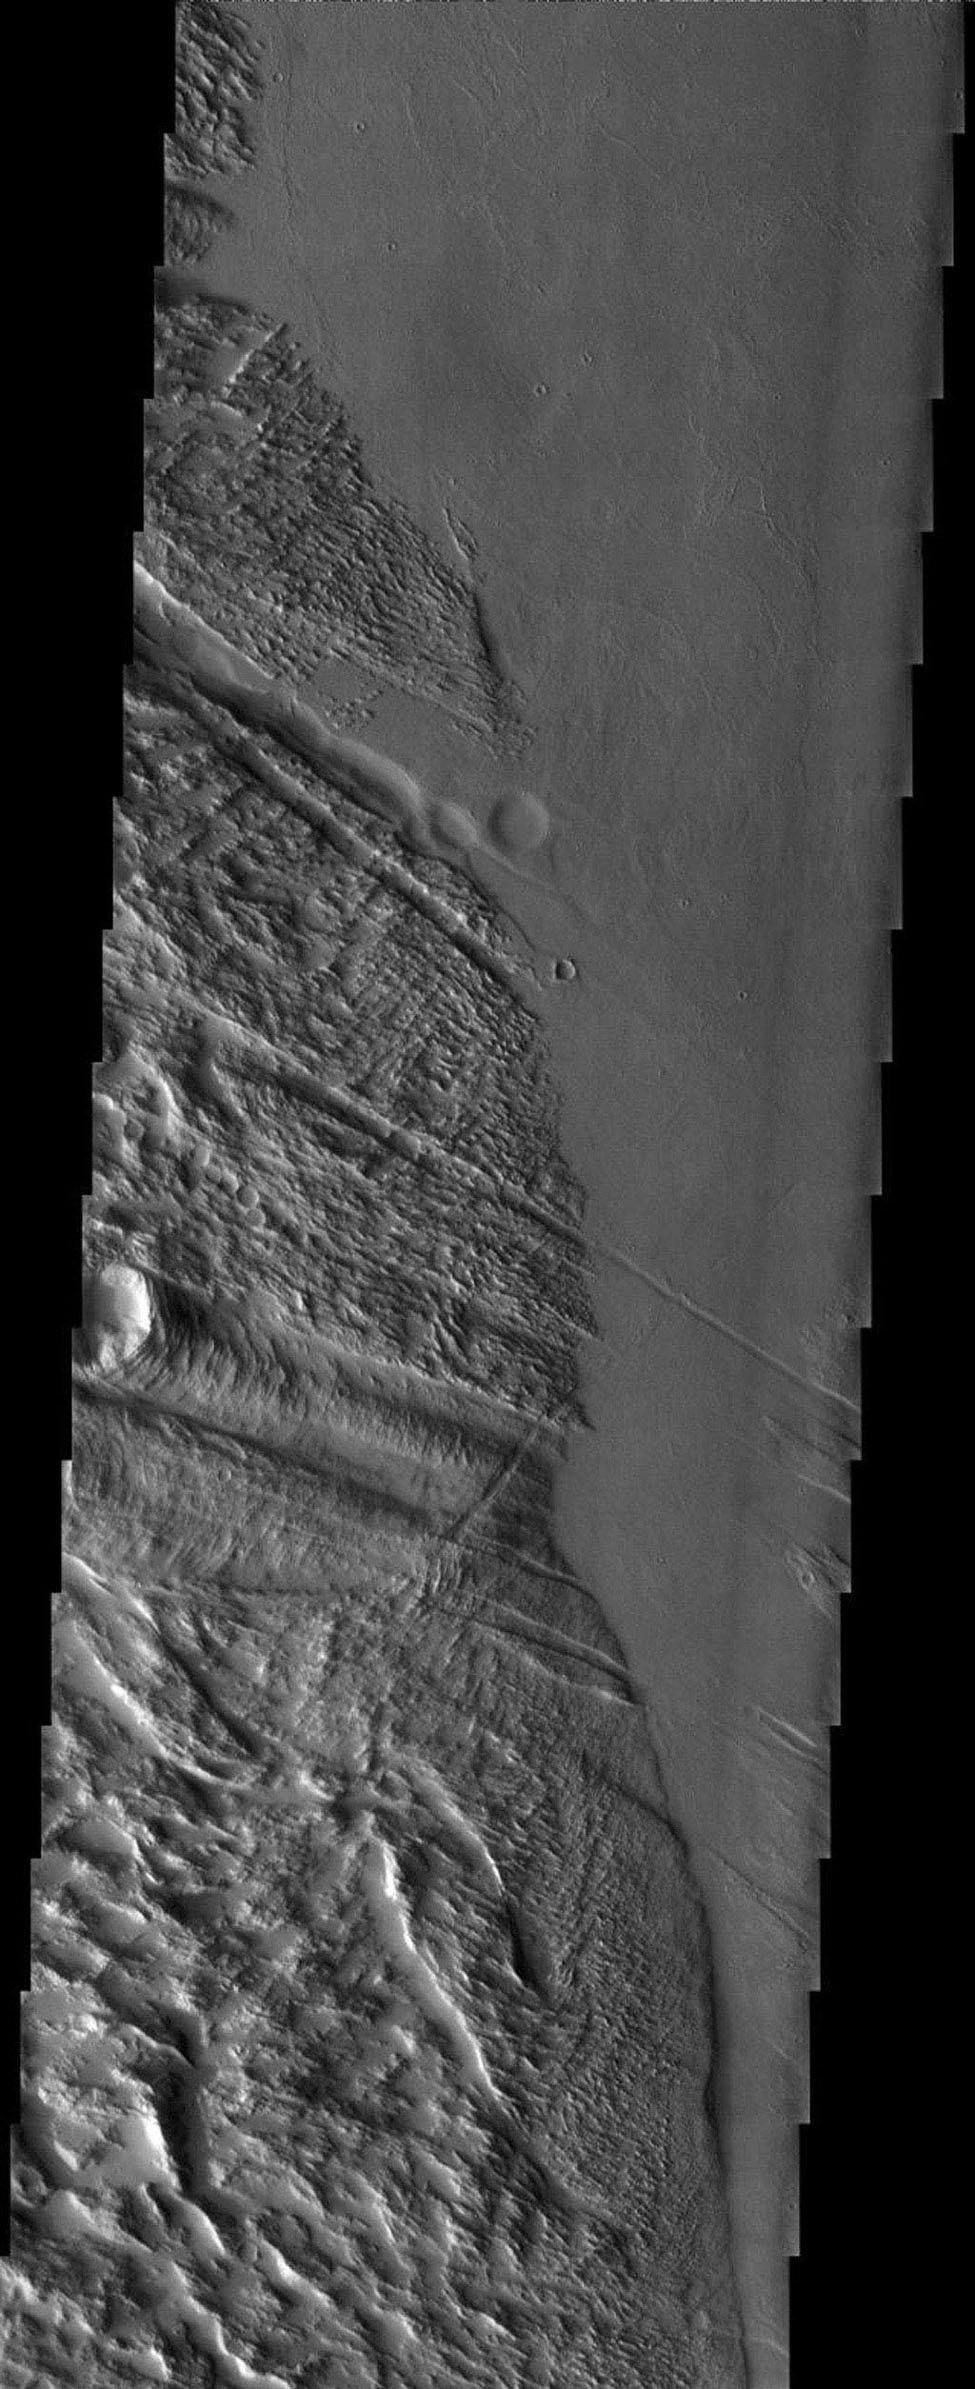 NASA's Mars Odyssey spacecraft captured this image in July 2003, roughly halfway between the great volcanoes of Olympus Mons and Pavonis Mons, the graben (troughs) of Ulysses Fossae intersect with the furrows of Gigas (gigantic) Sulci.